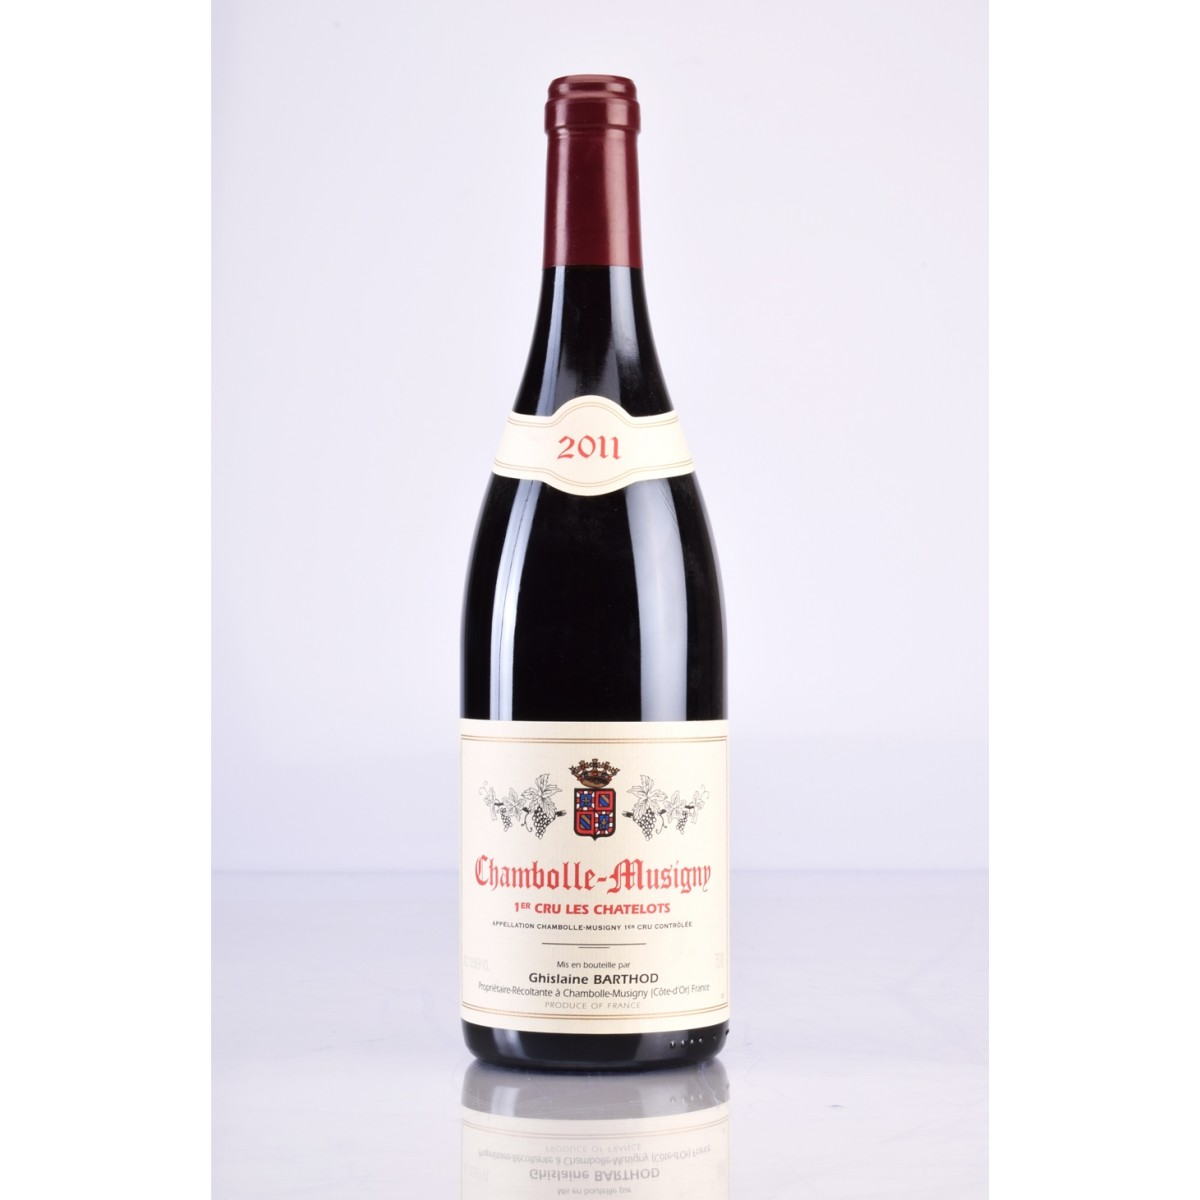 CHAMBOLLE MUSIGNY 1ER CRU LES CHATELOTS AOC 2011 DOMAINE GHISLAINE BARTHOD